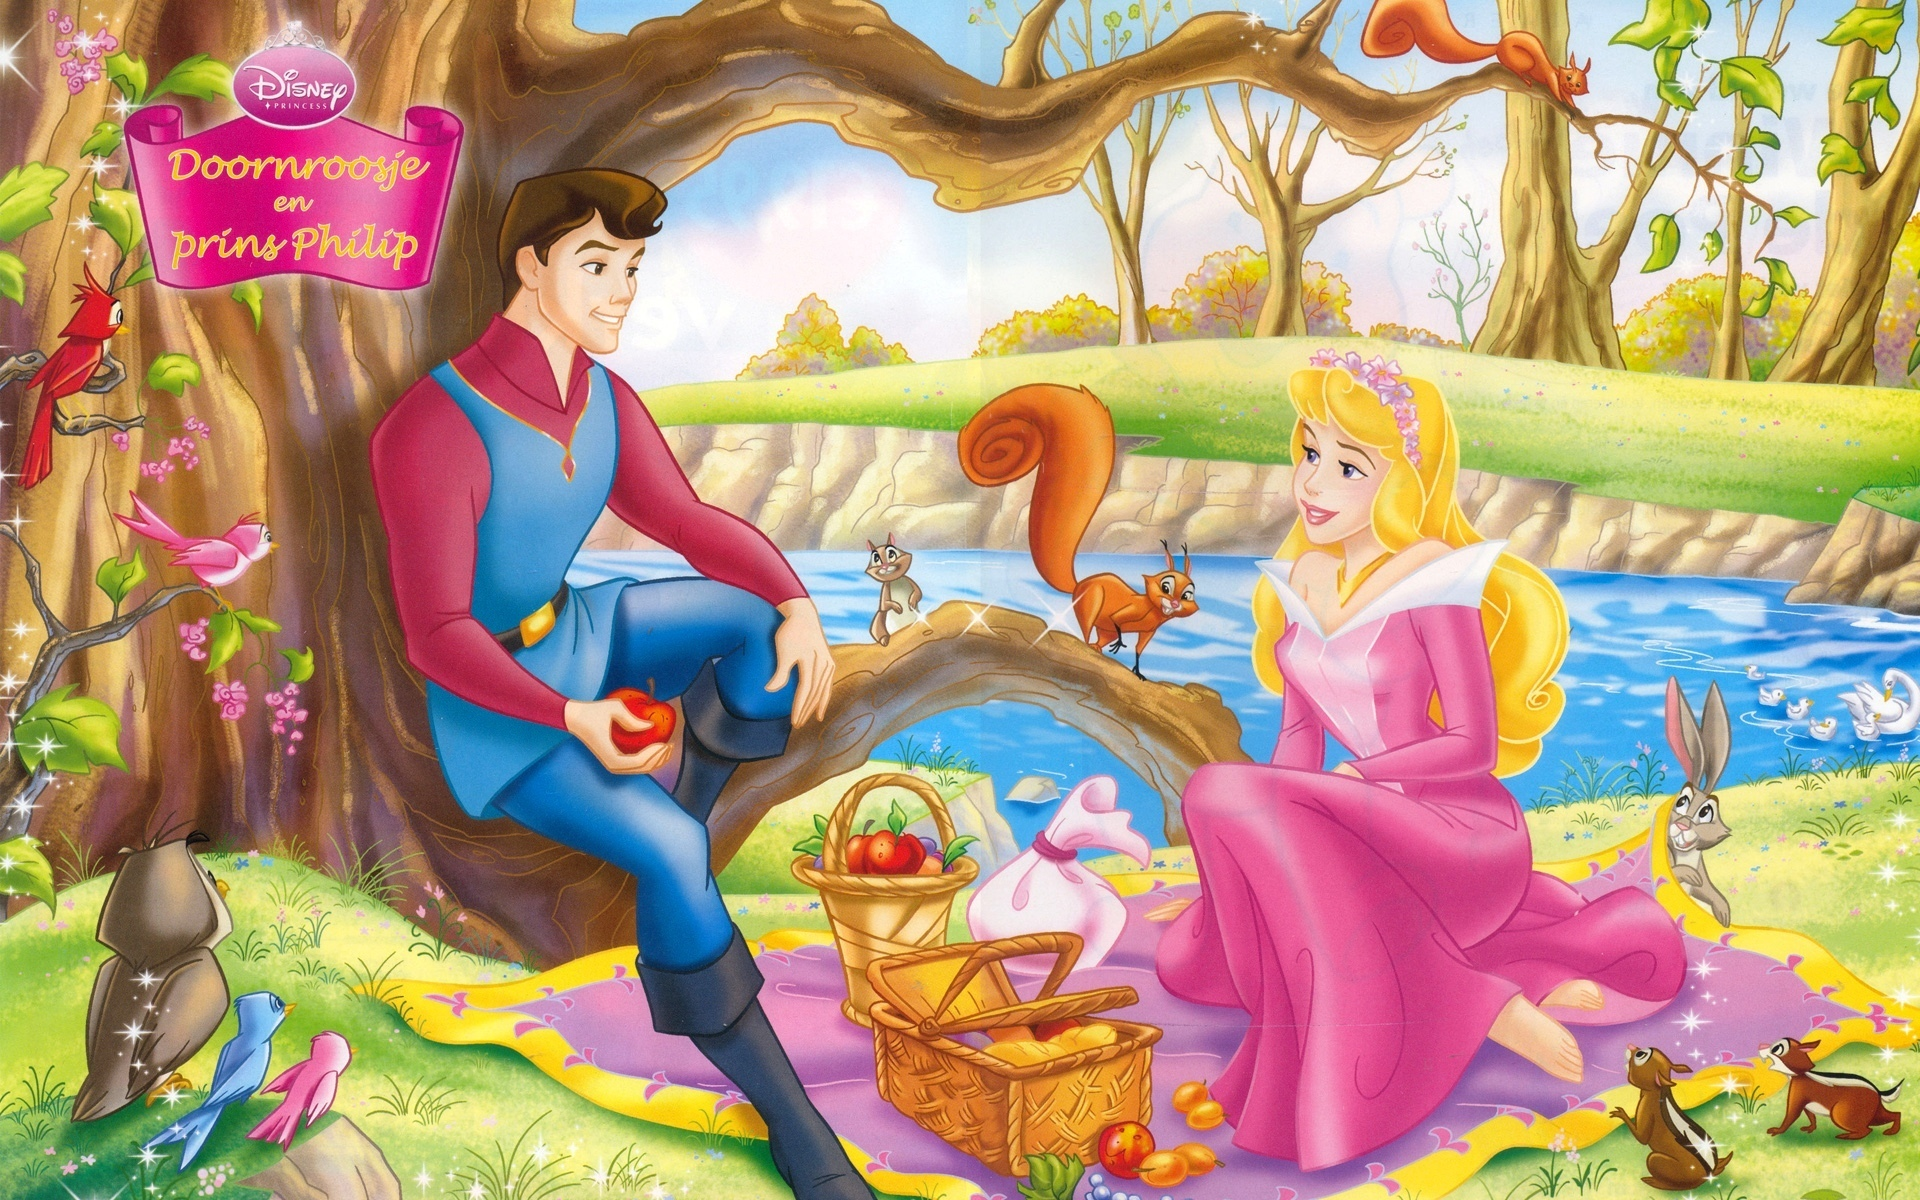 princess aurora and prince philip cartoon image